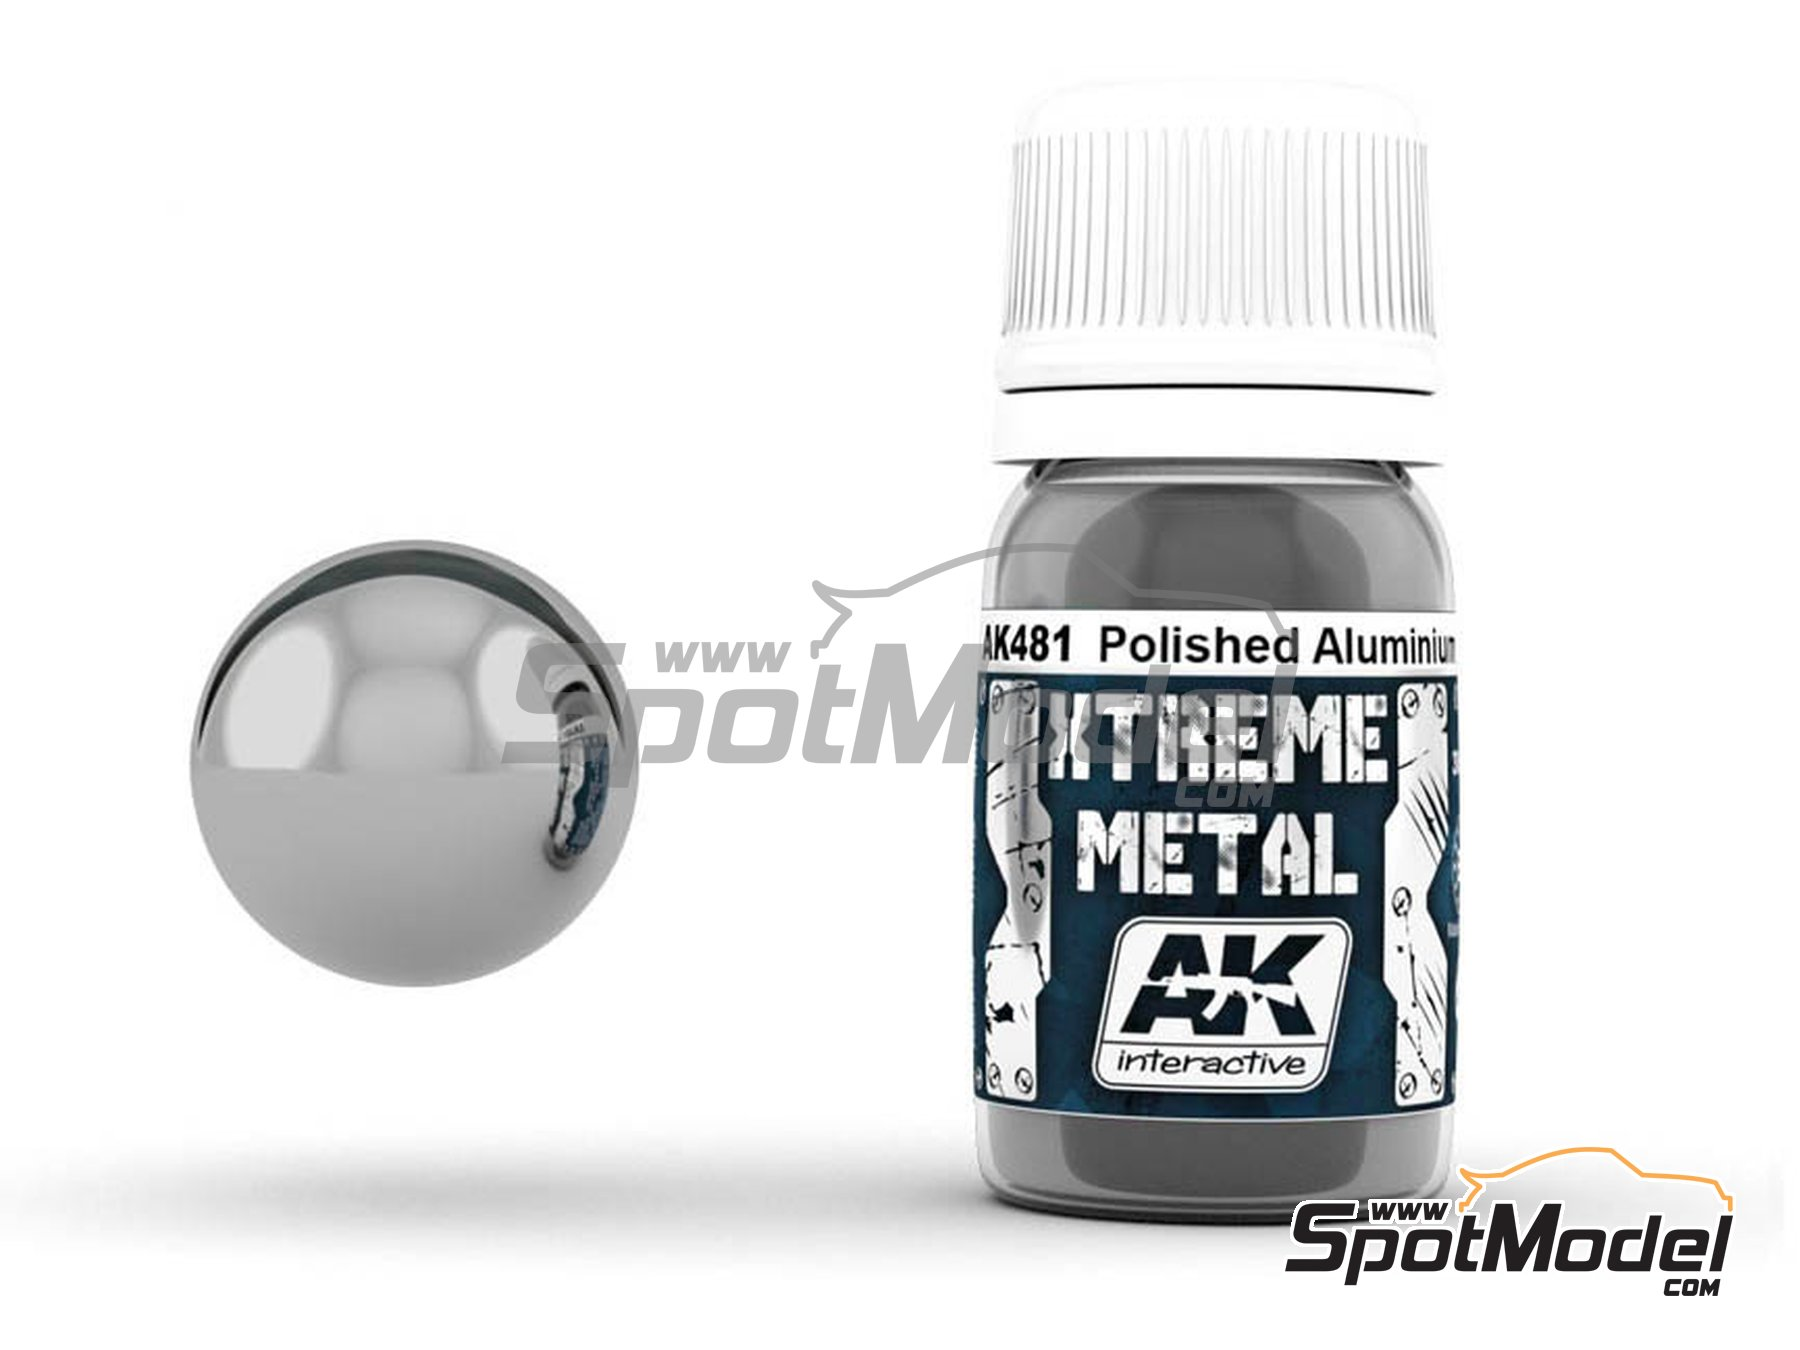 Image 1: Polished aluminium | Xtreme metal paint manufactured by AK Interactive (ref. AK-481)